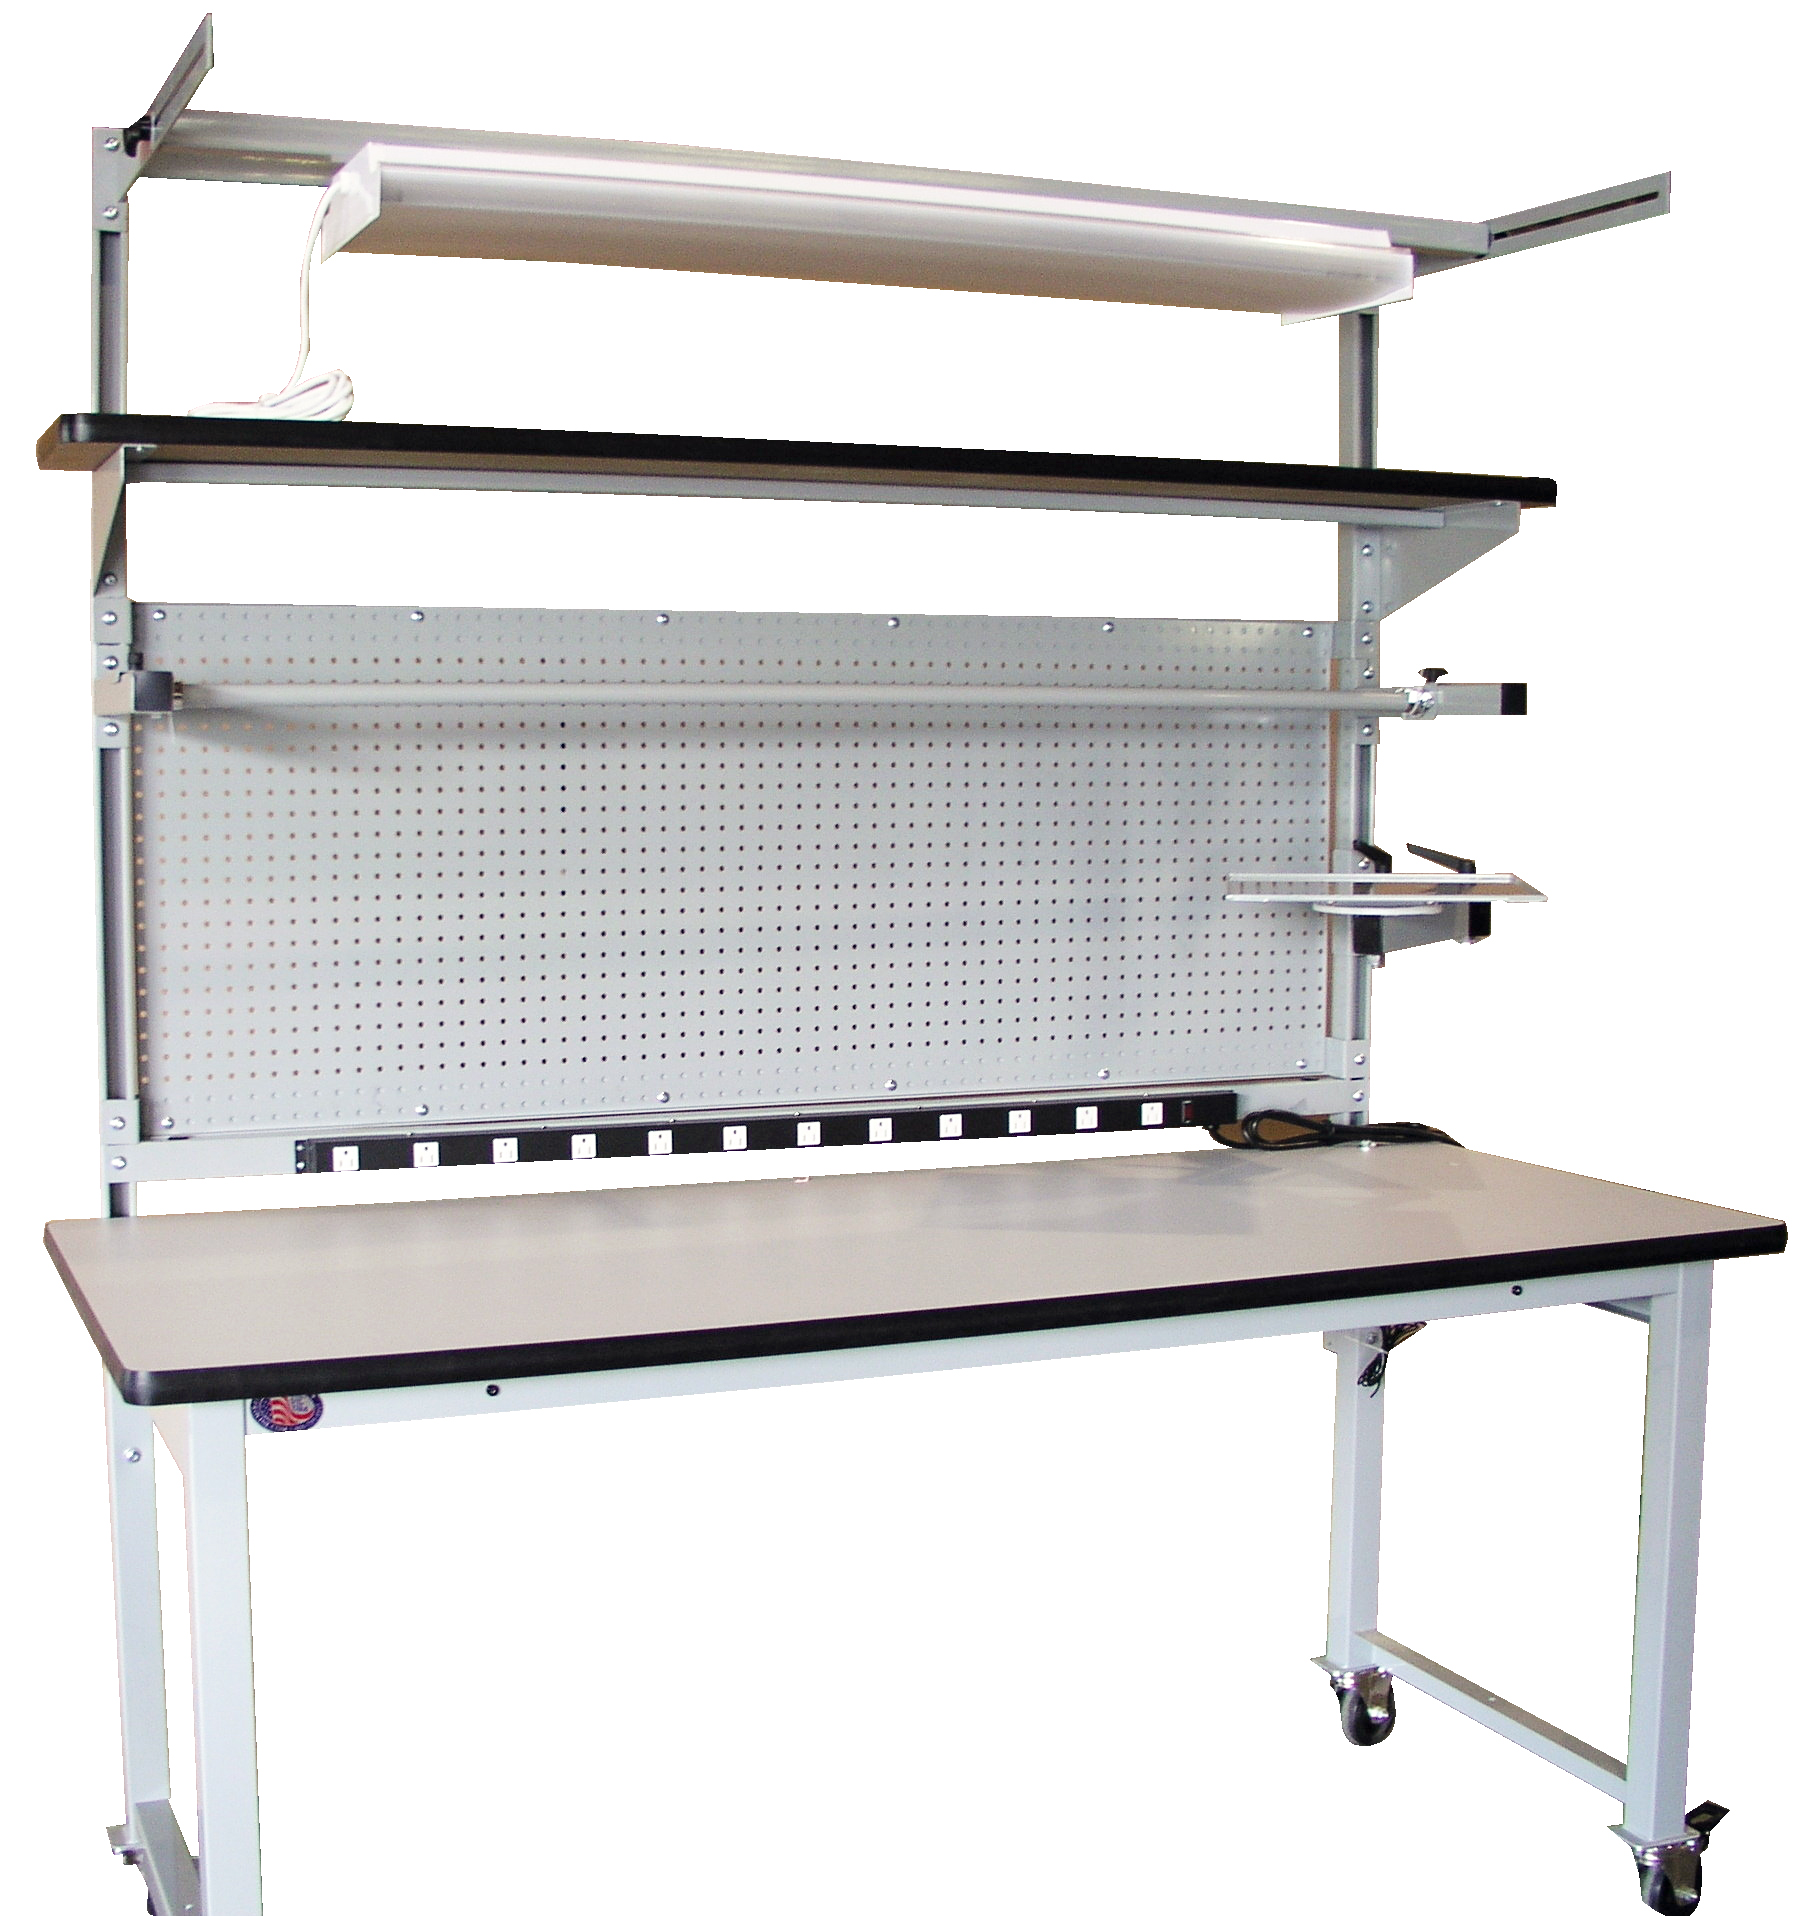 136 HDwithSPB1?t=1500658192182 workbenches idea file past orders  at gsmportal.co